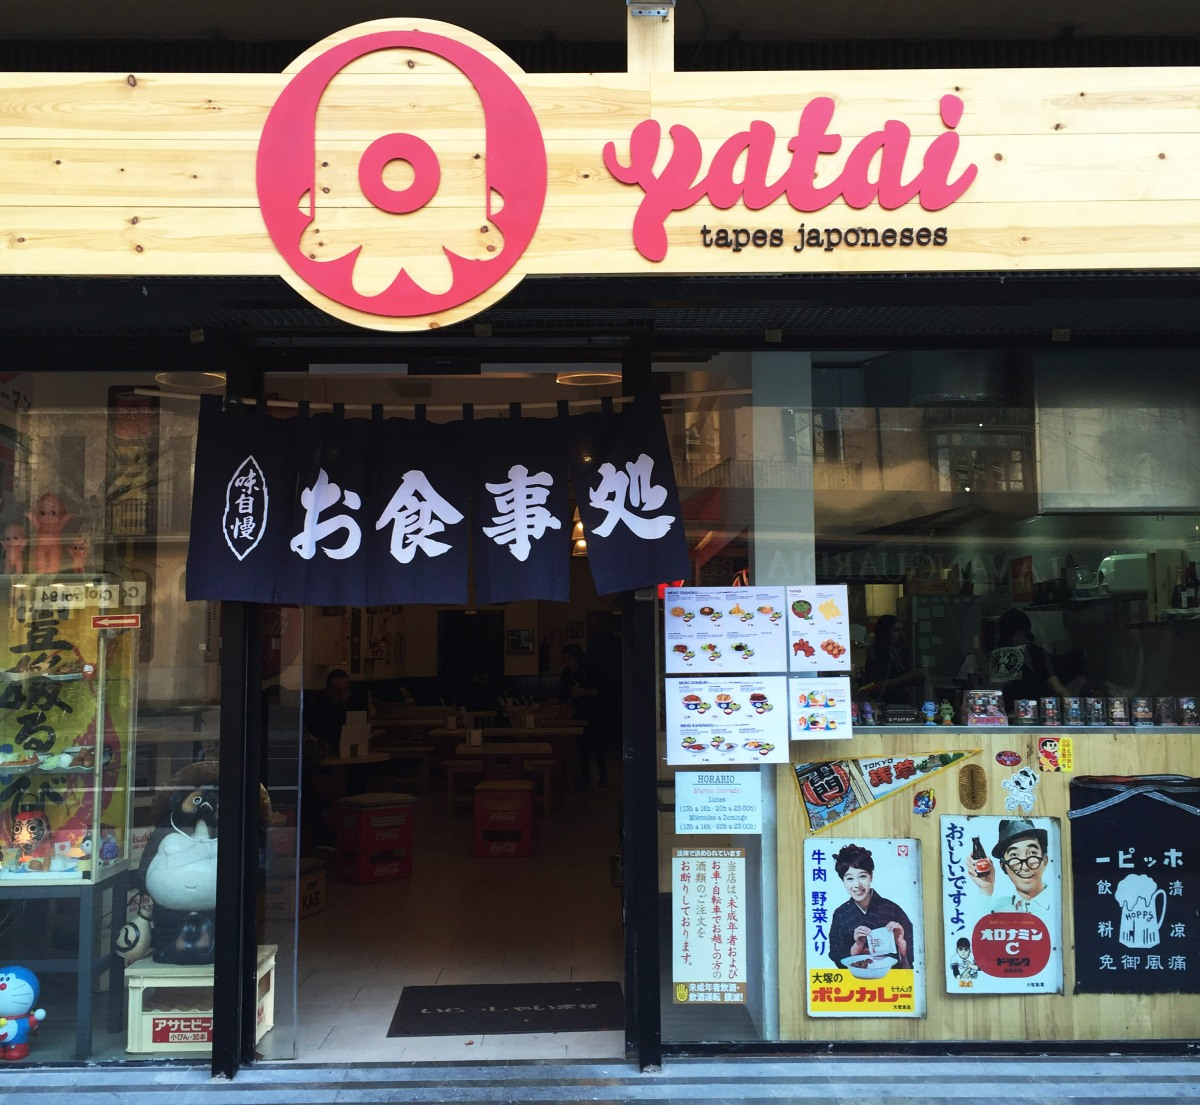 Yatai, tapes japoneses